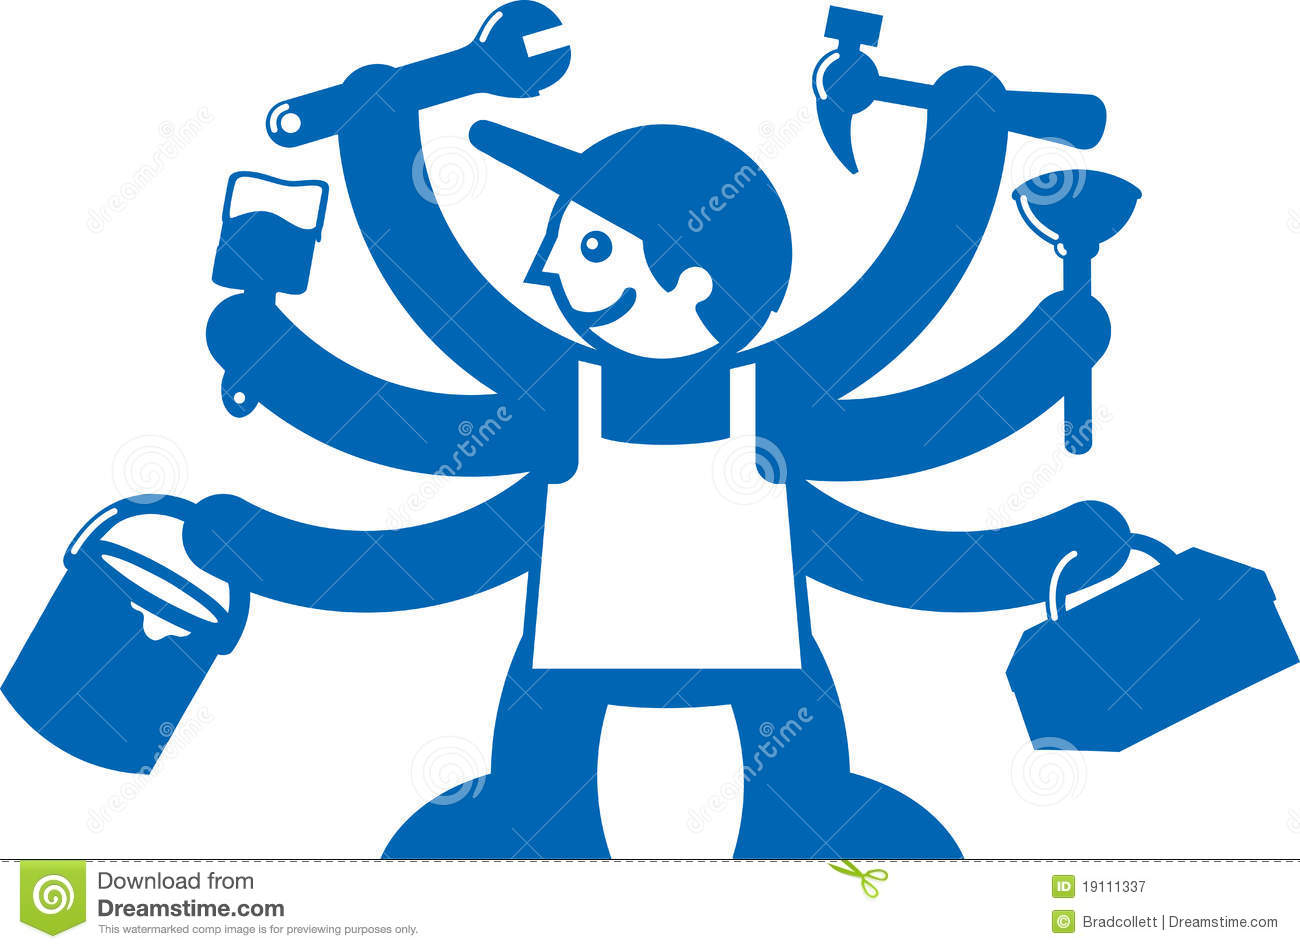 Jack Of All Trades Royalty Free Stock Photography - Image: 19111337